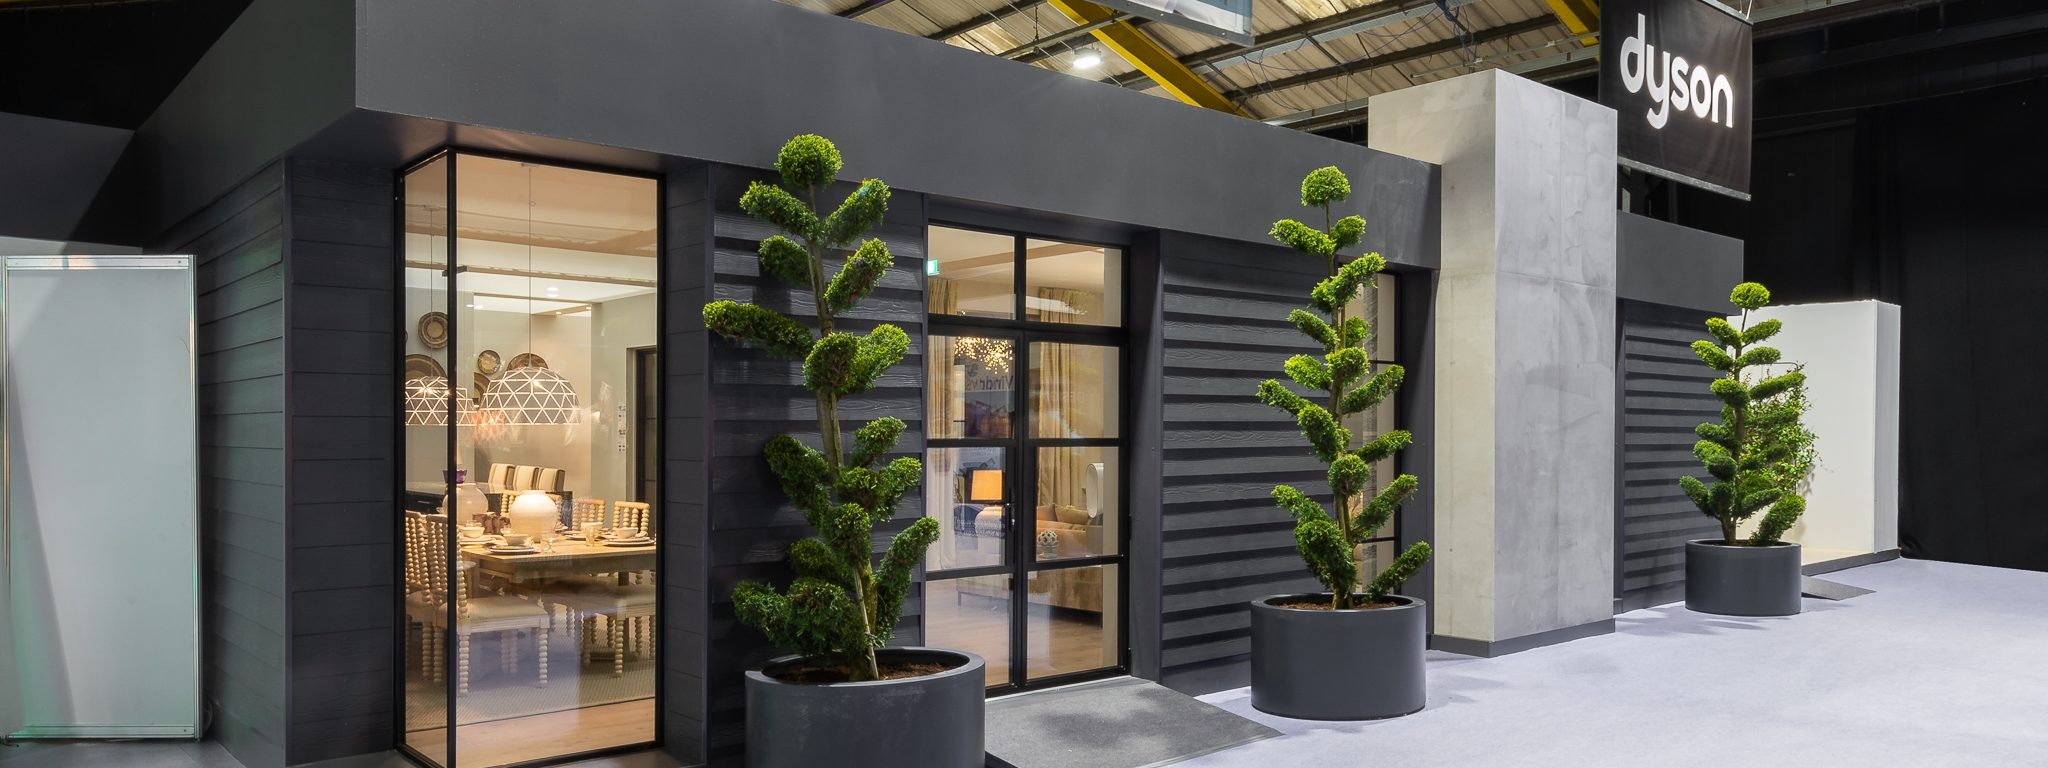 Dyson Wellbeing Showhouse